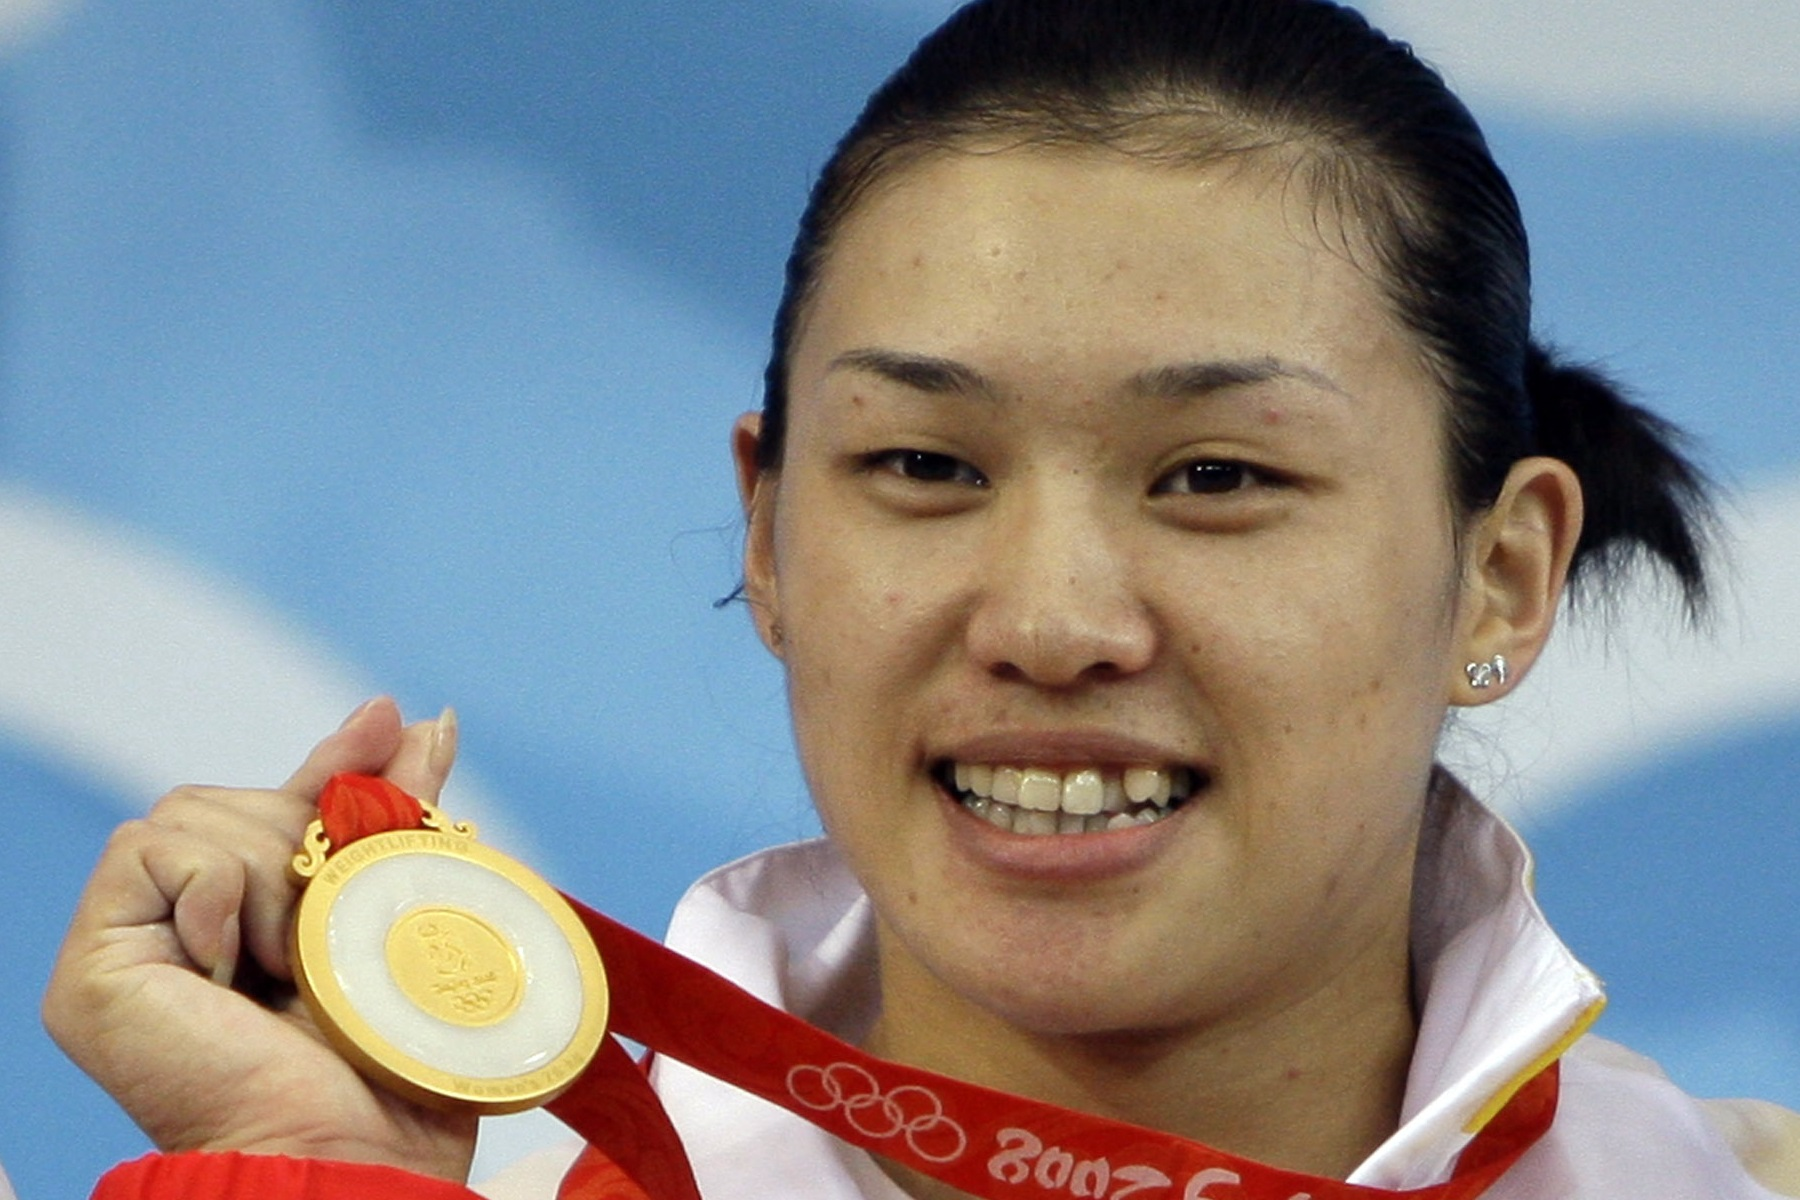 Cao Lei, of China, holds up her gold medal in the women's 75 kg of the weightlifting competition at the Beijing 2008 Olympics in Beijing, Friday, Aug. 15, 2008. Cao set new Olympic records in the snatch (128 kg), clean and jerk (154 kg) and the overall (2